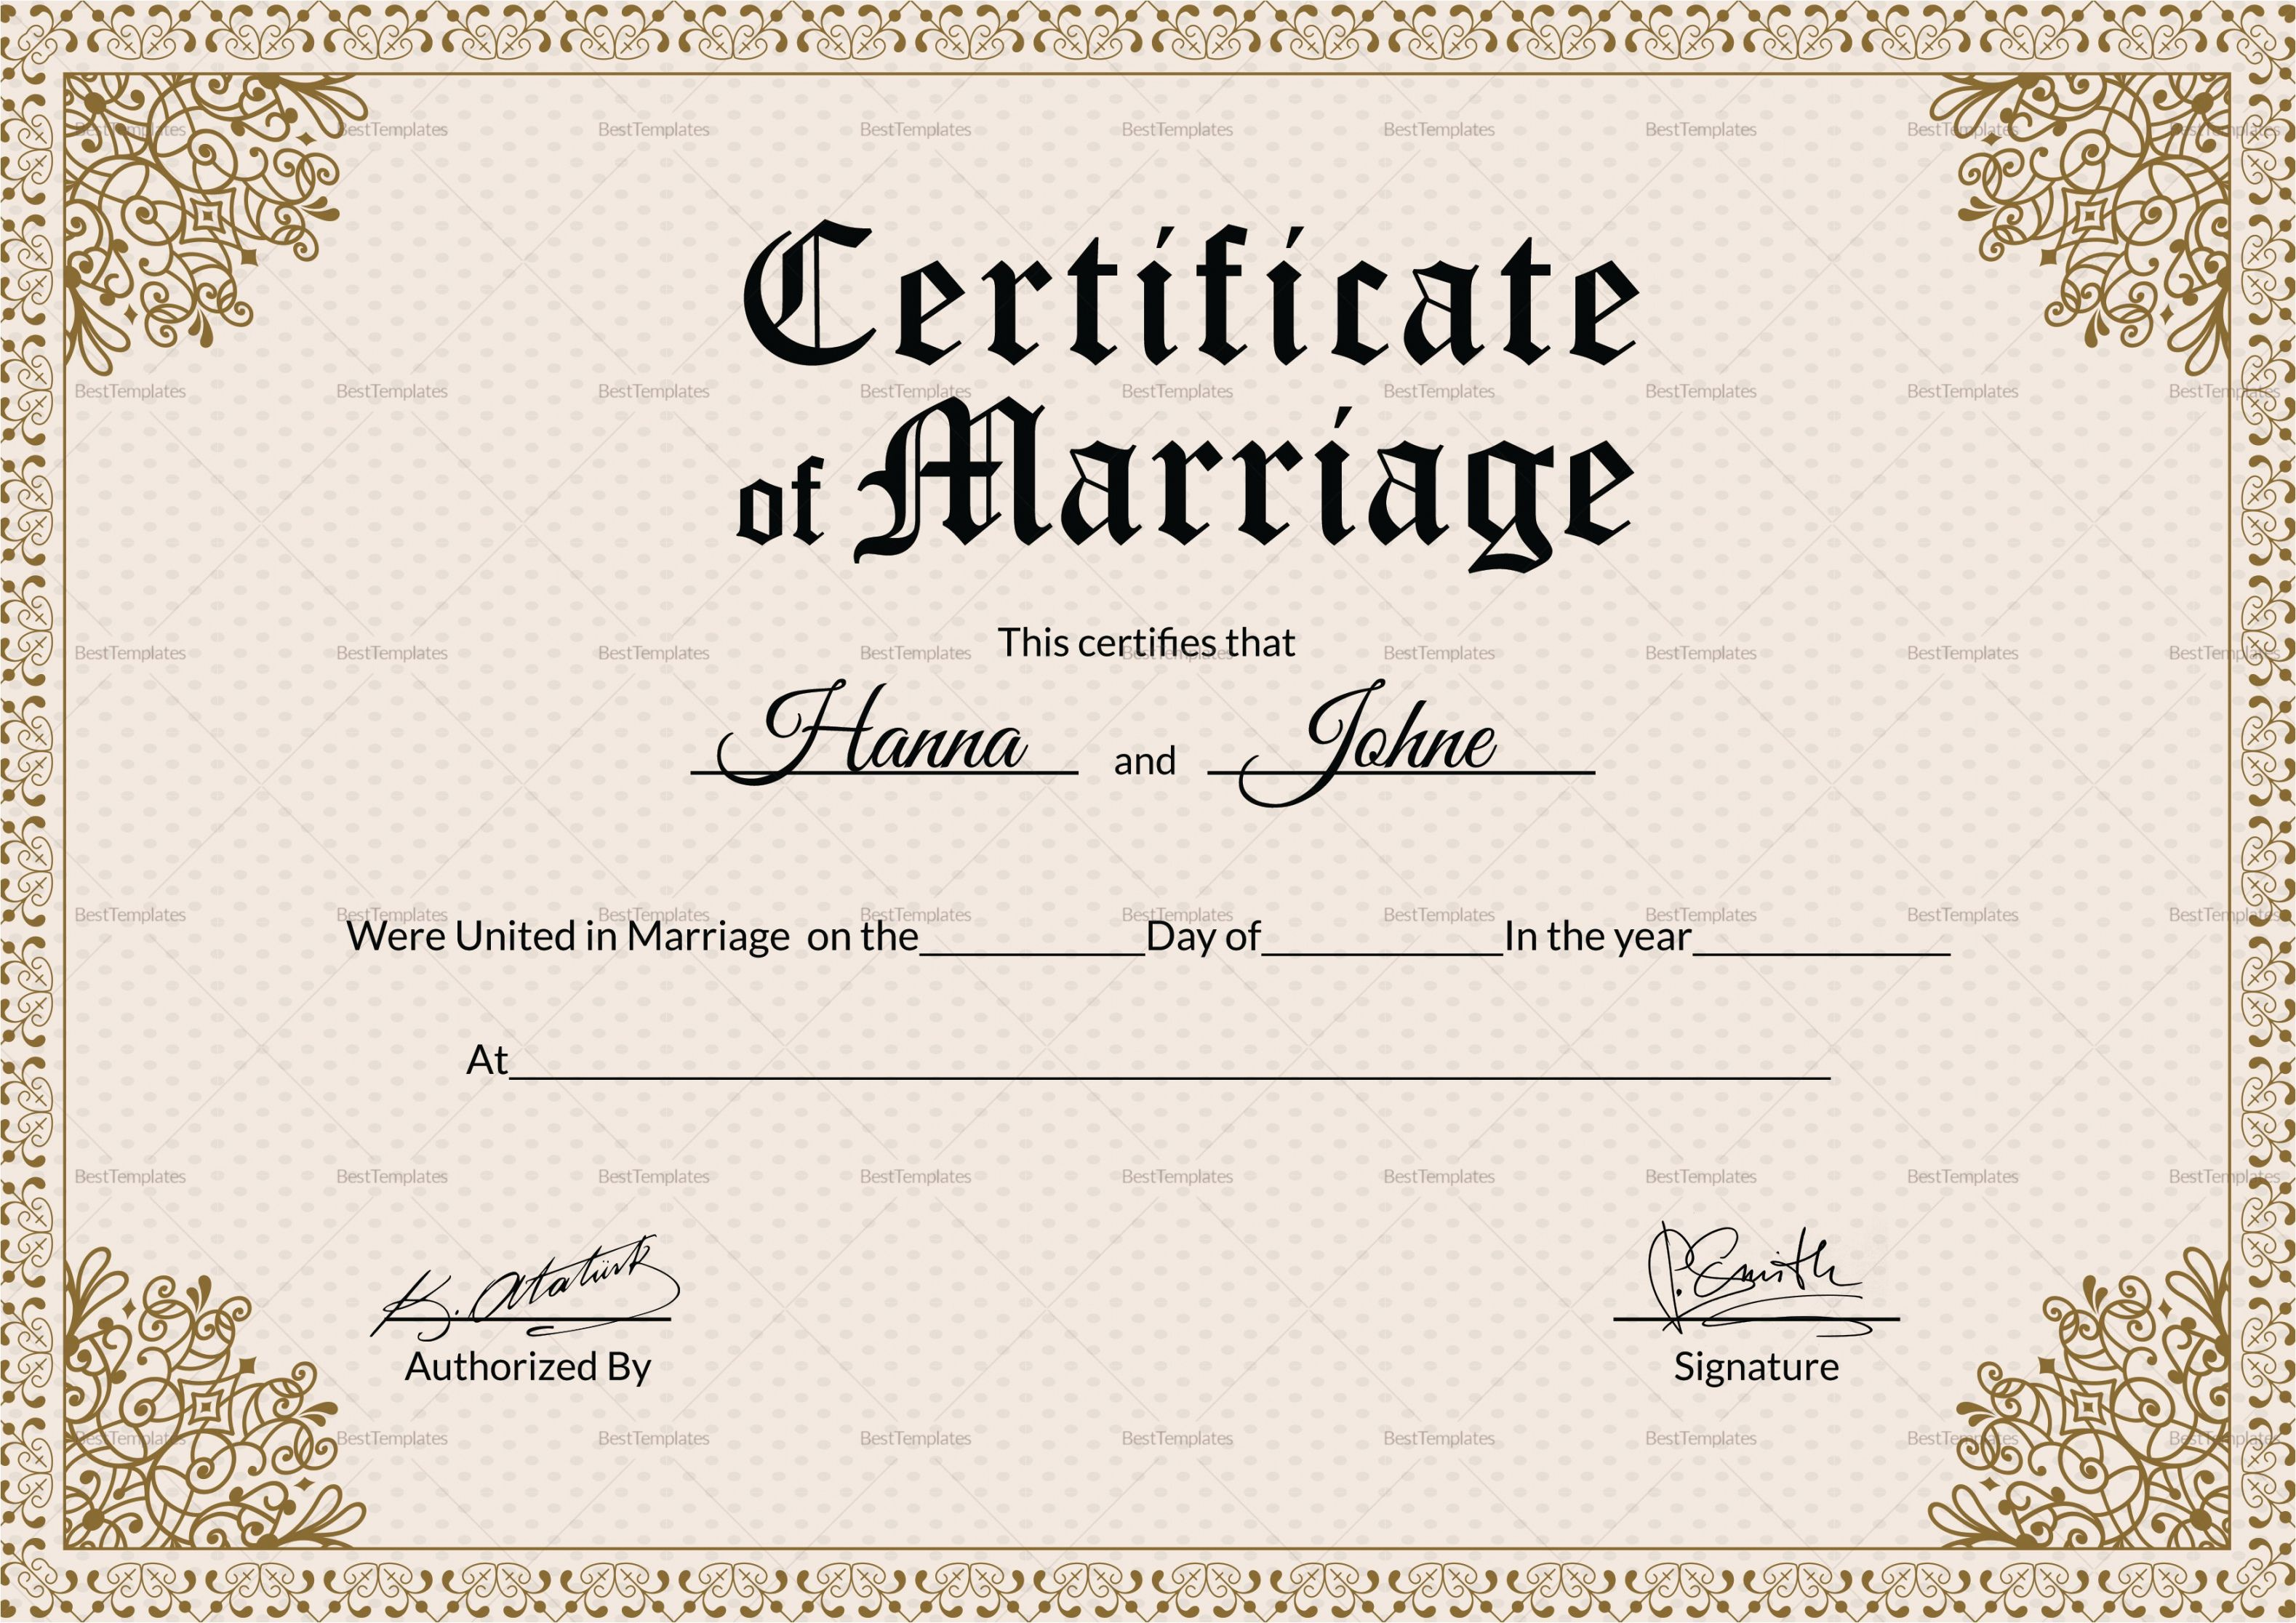 002 Imposing Free Marriage Certificate Template Photo  Renewal Translation From Spanish To English Wedding DownloadFull